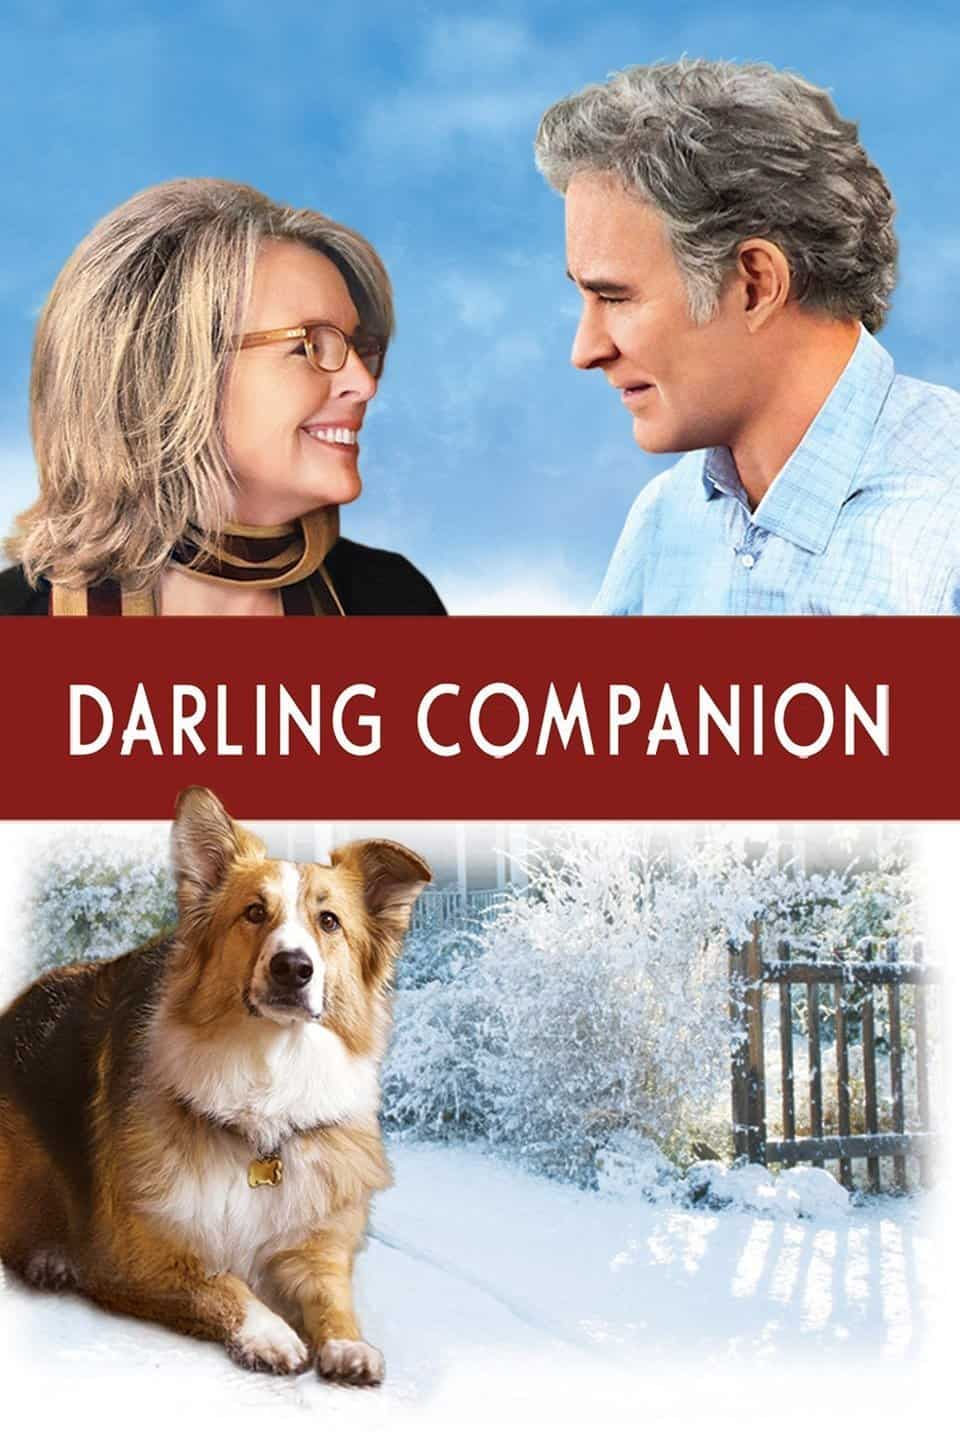 Darling Companion, 2012